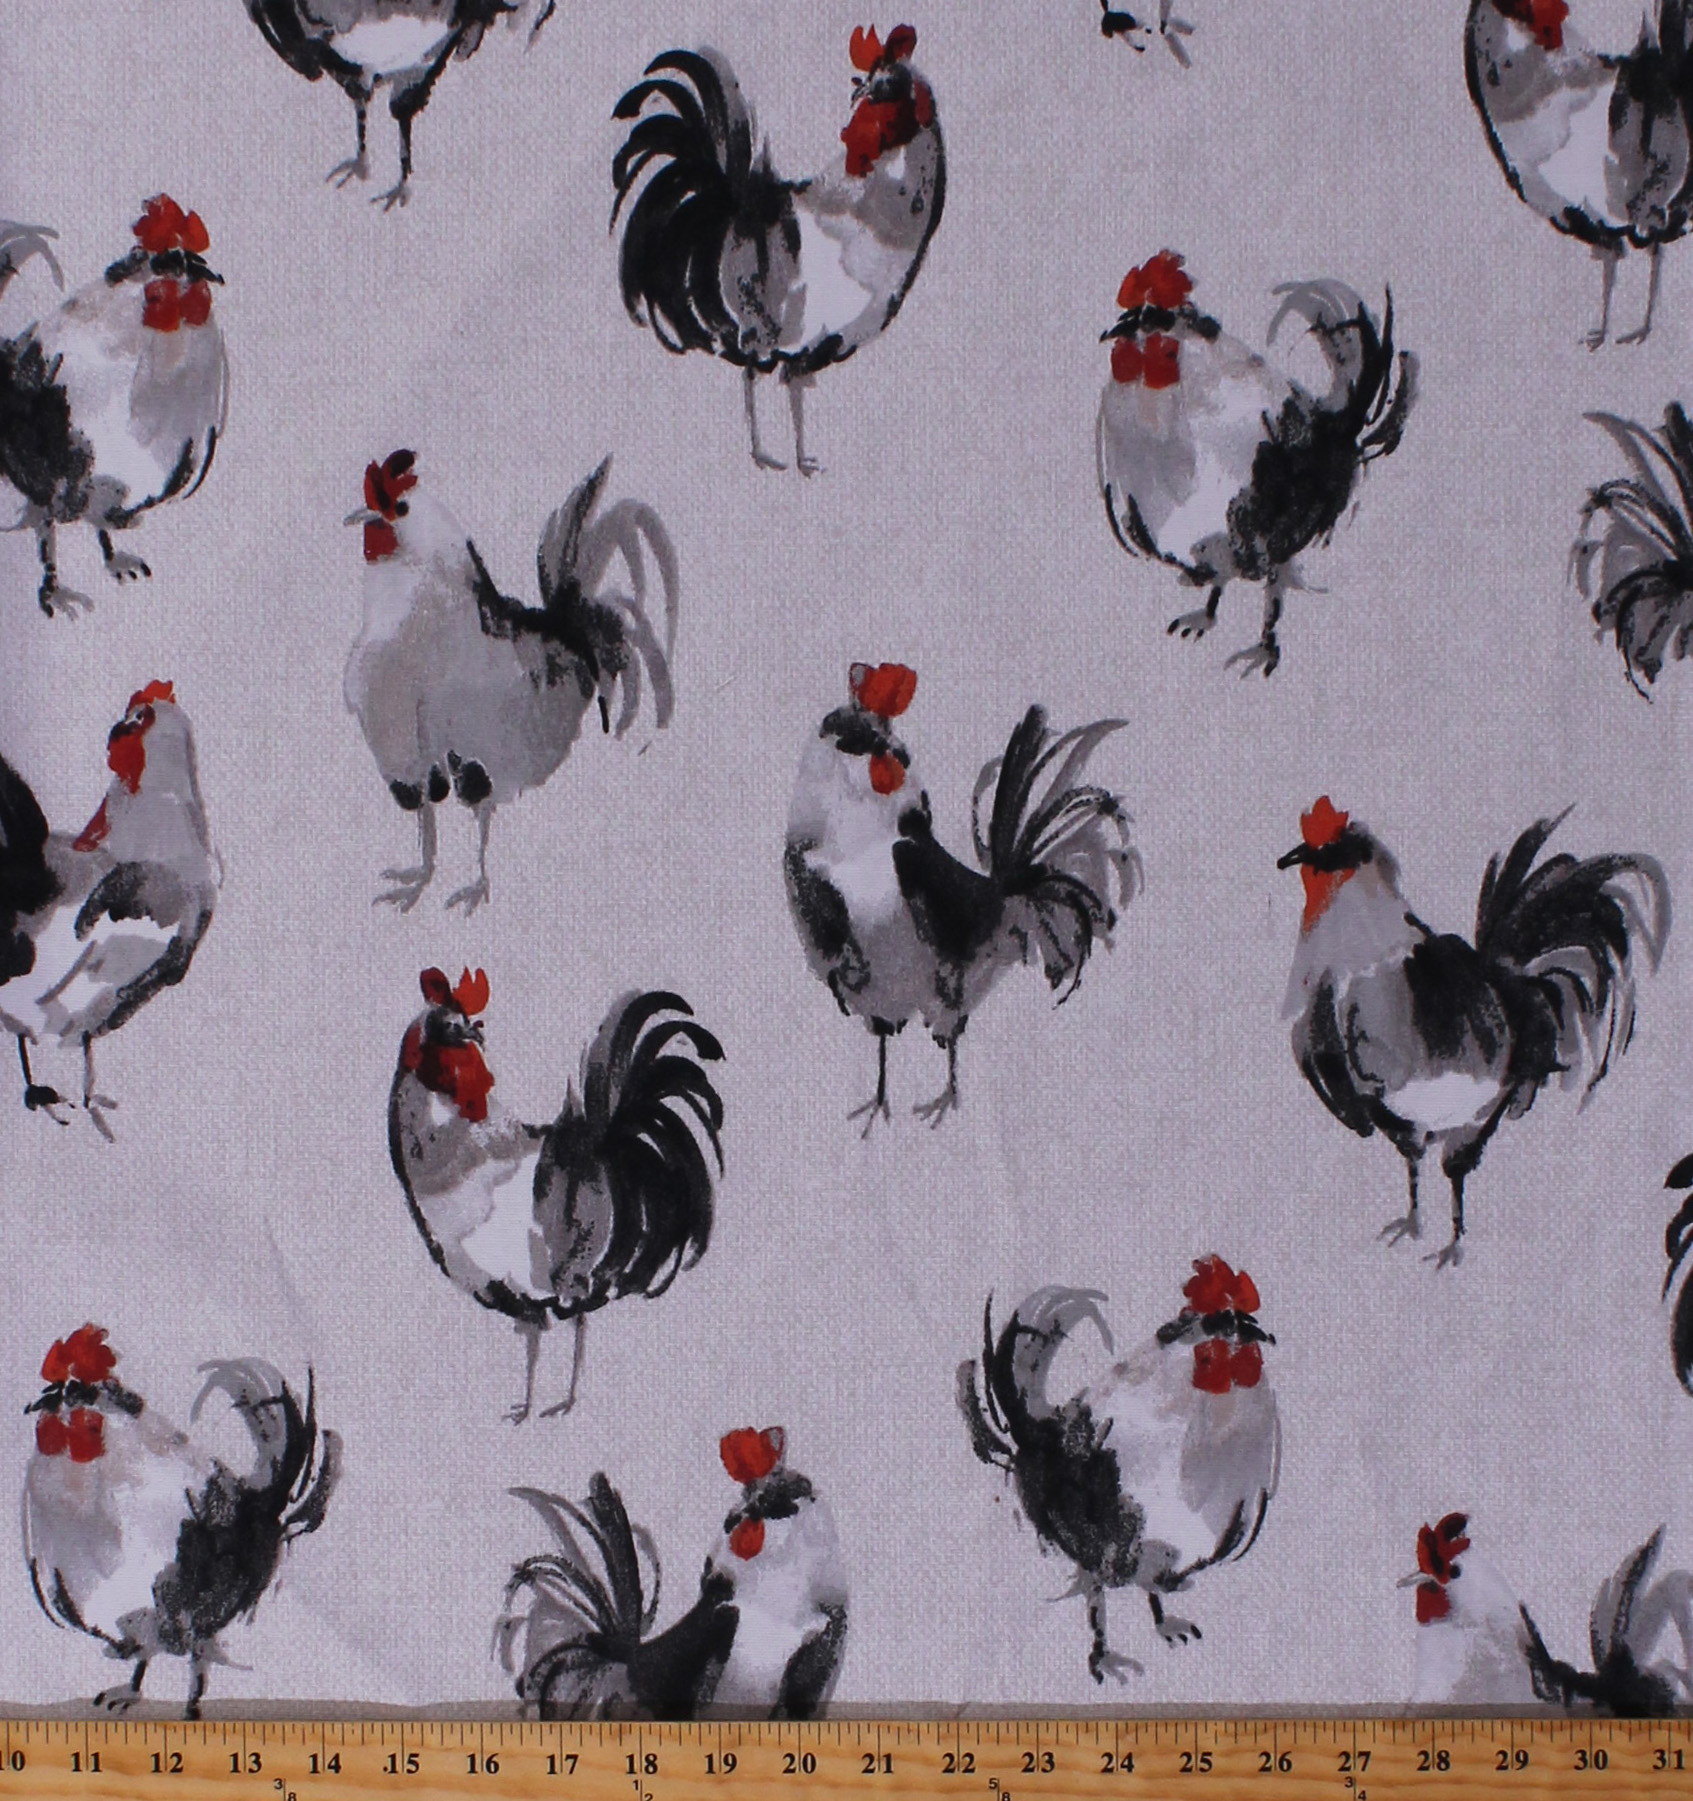 Home Decor Roosters Chickens Watercolor Look Birds Farm Animals On Cream Taupe Basket Weave Look 44 Wide Duck Fabric By The Yard D456 05